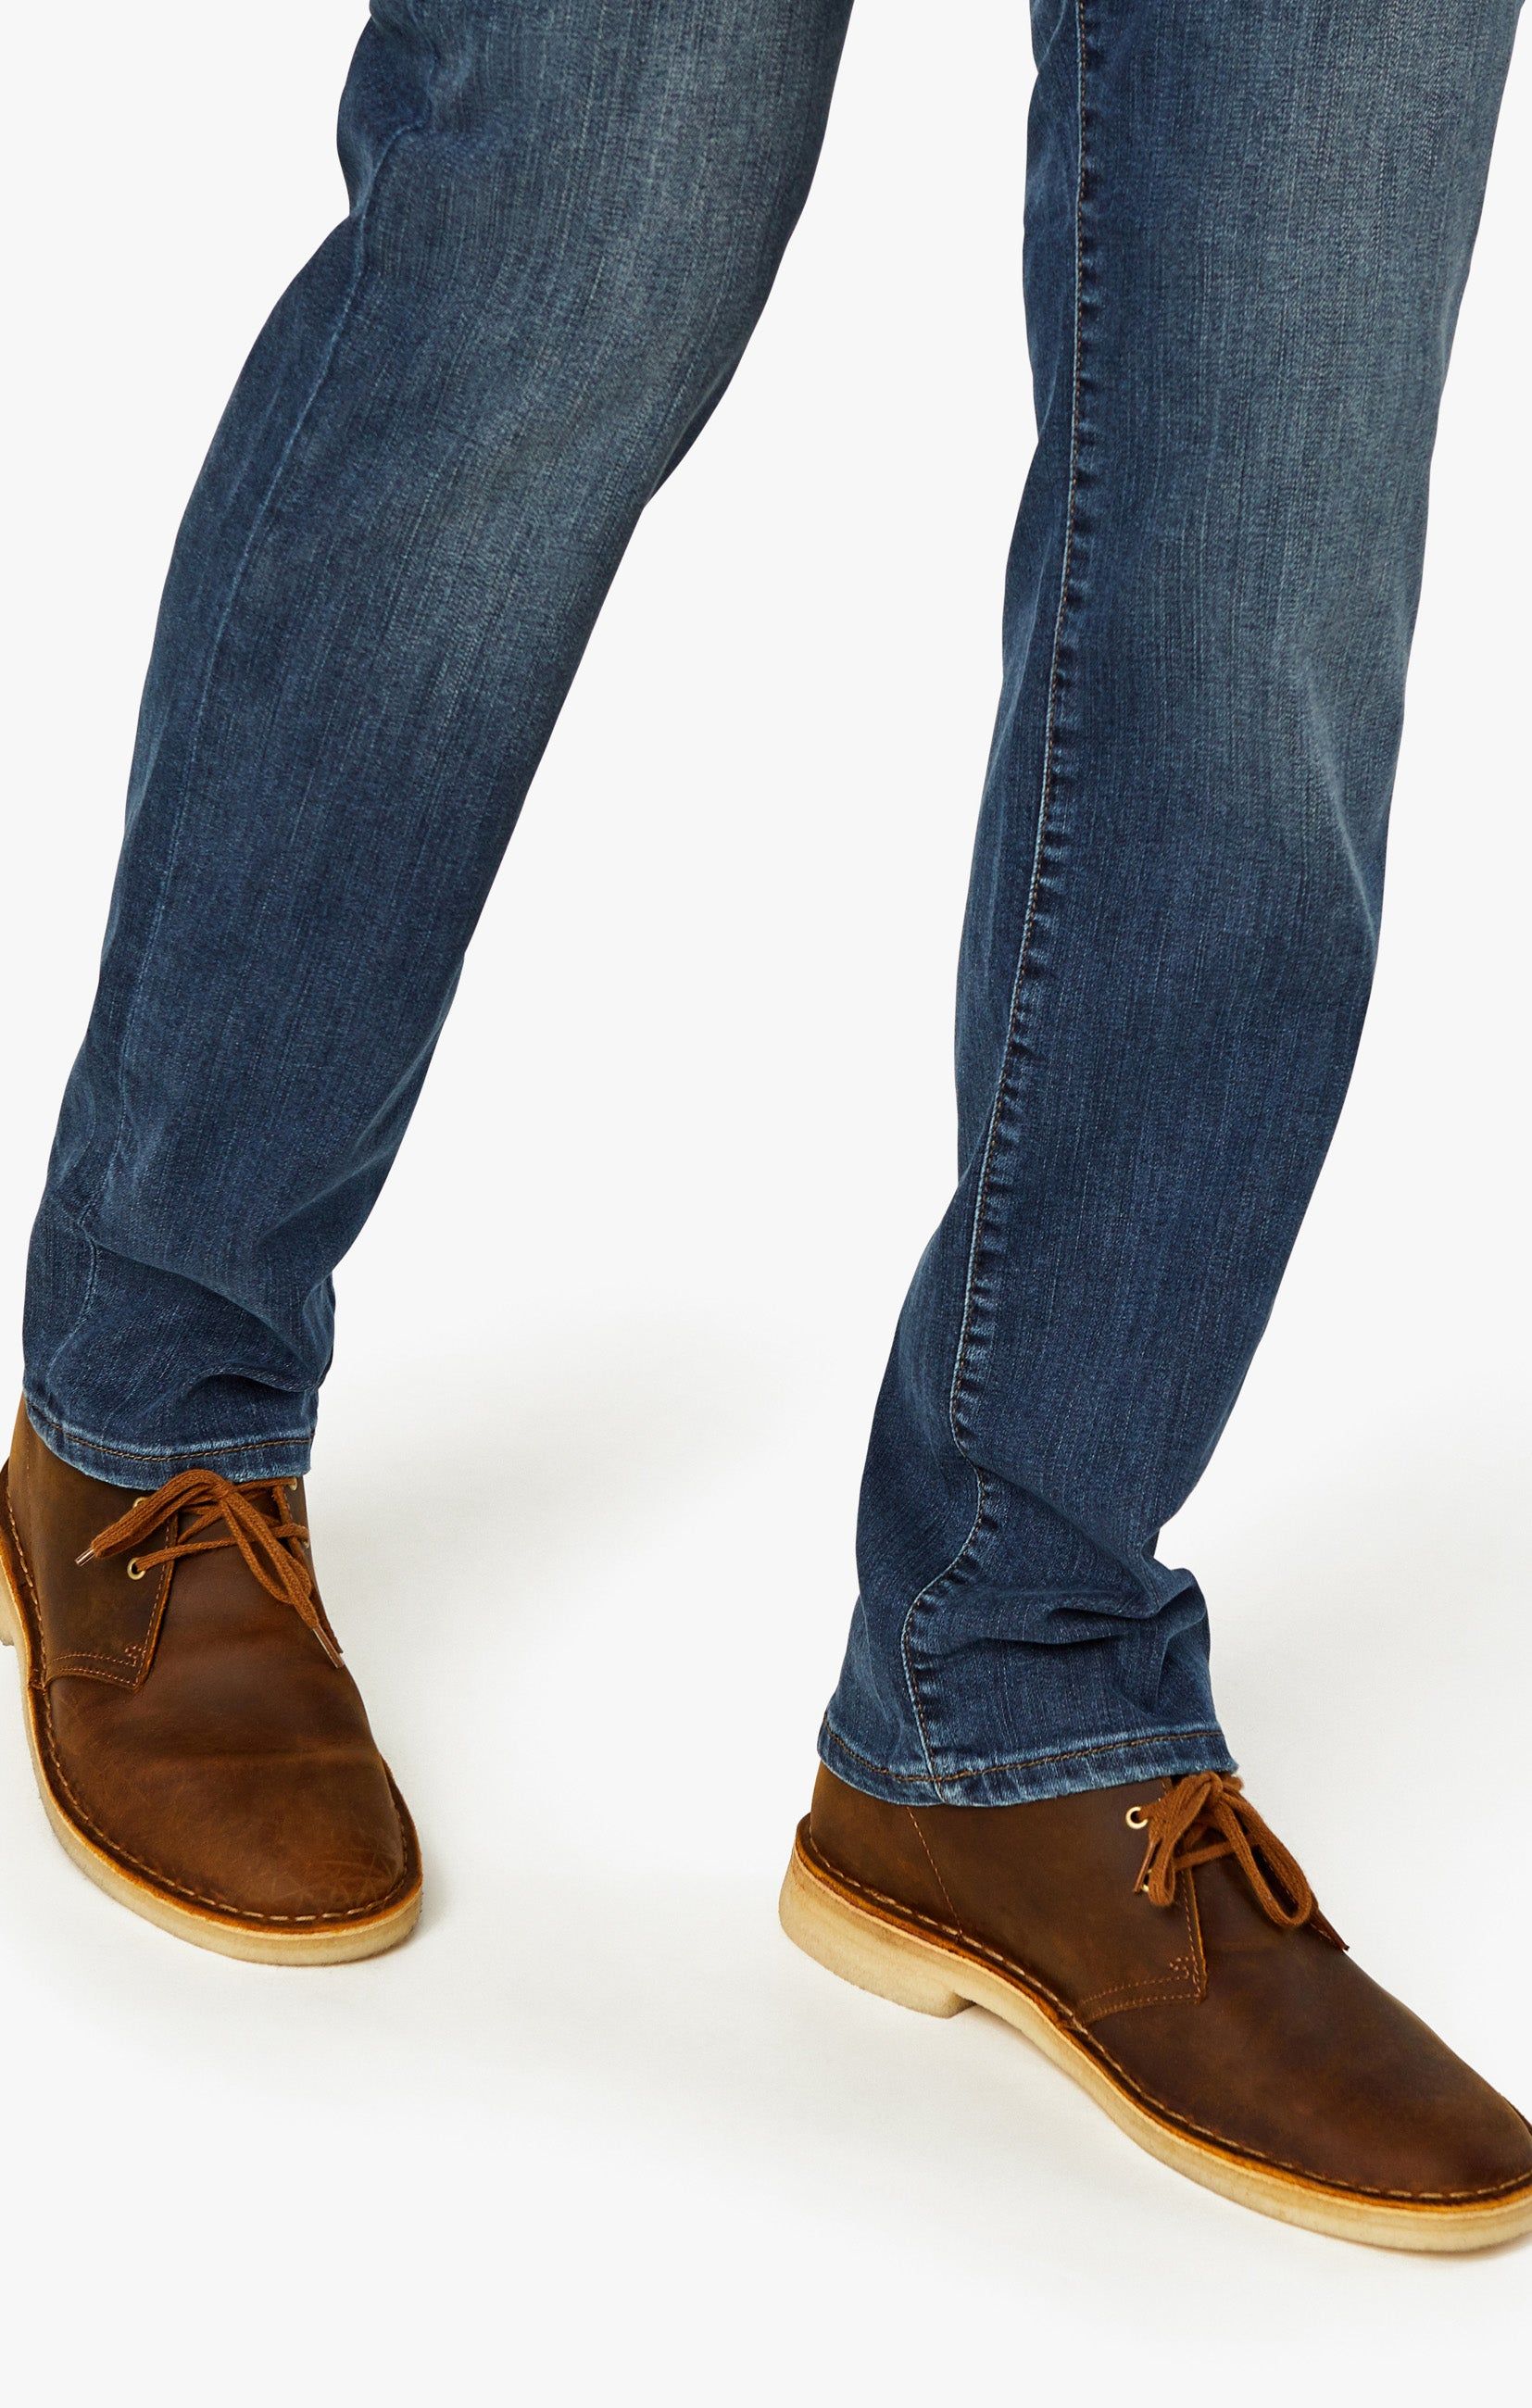 Courage Straight Leg Jeans In Mid Vintage Image 10